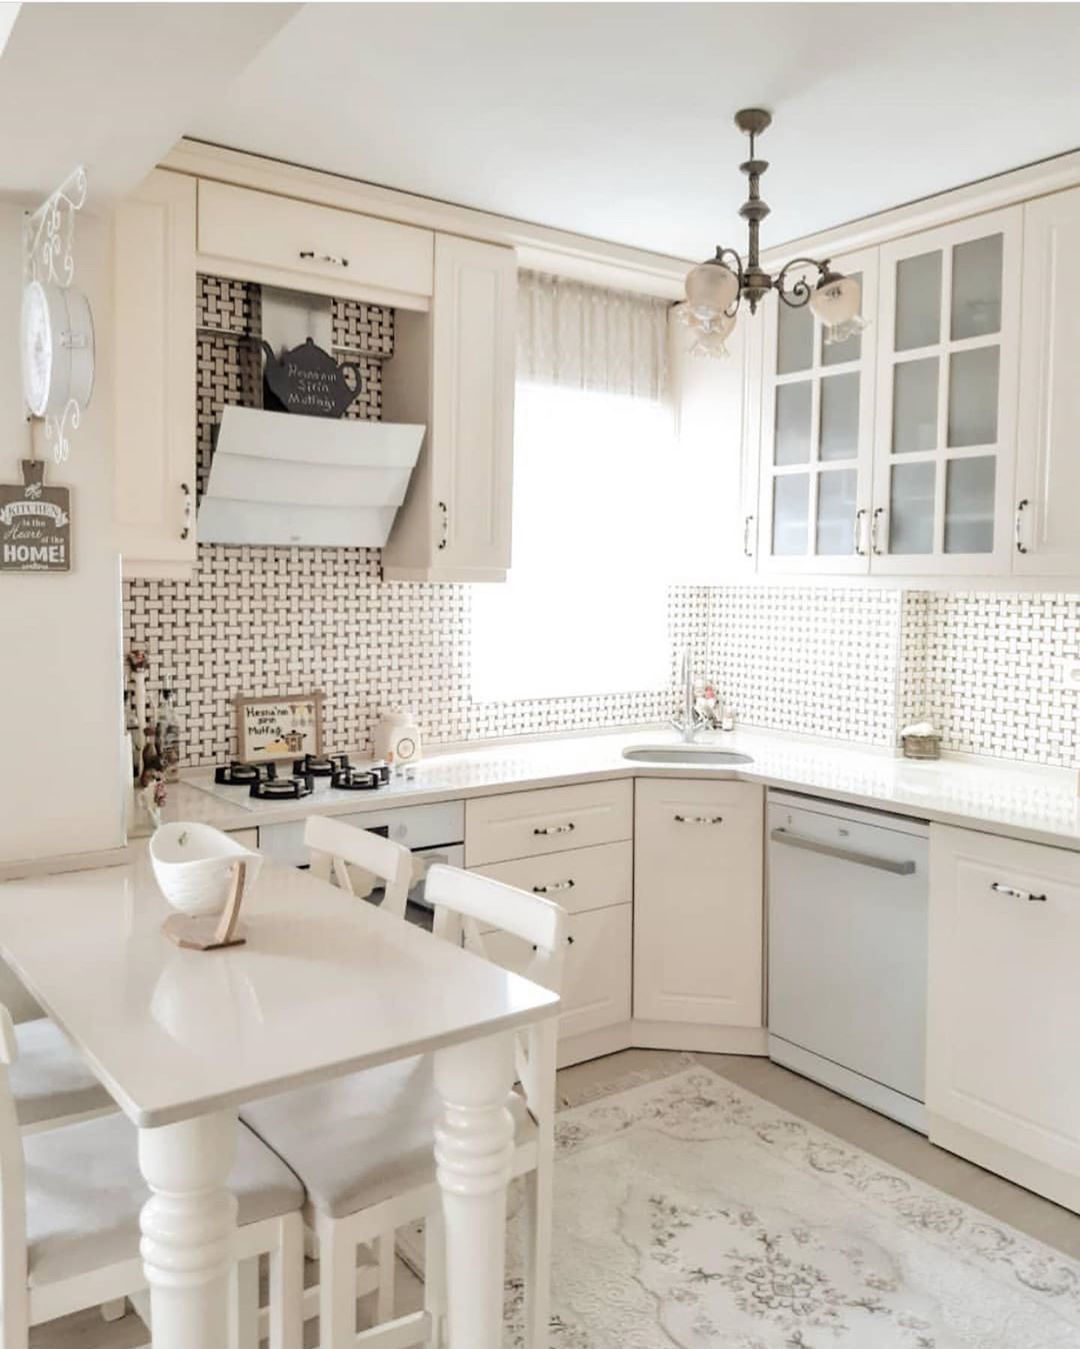 The Most Spectacular Kitchen Decoration Models of 2021 (23)